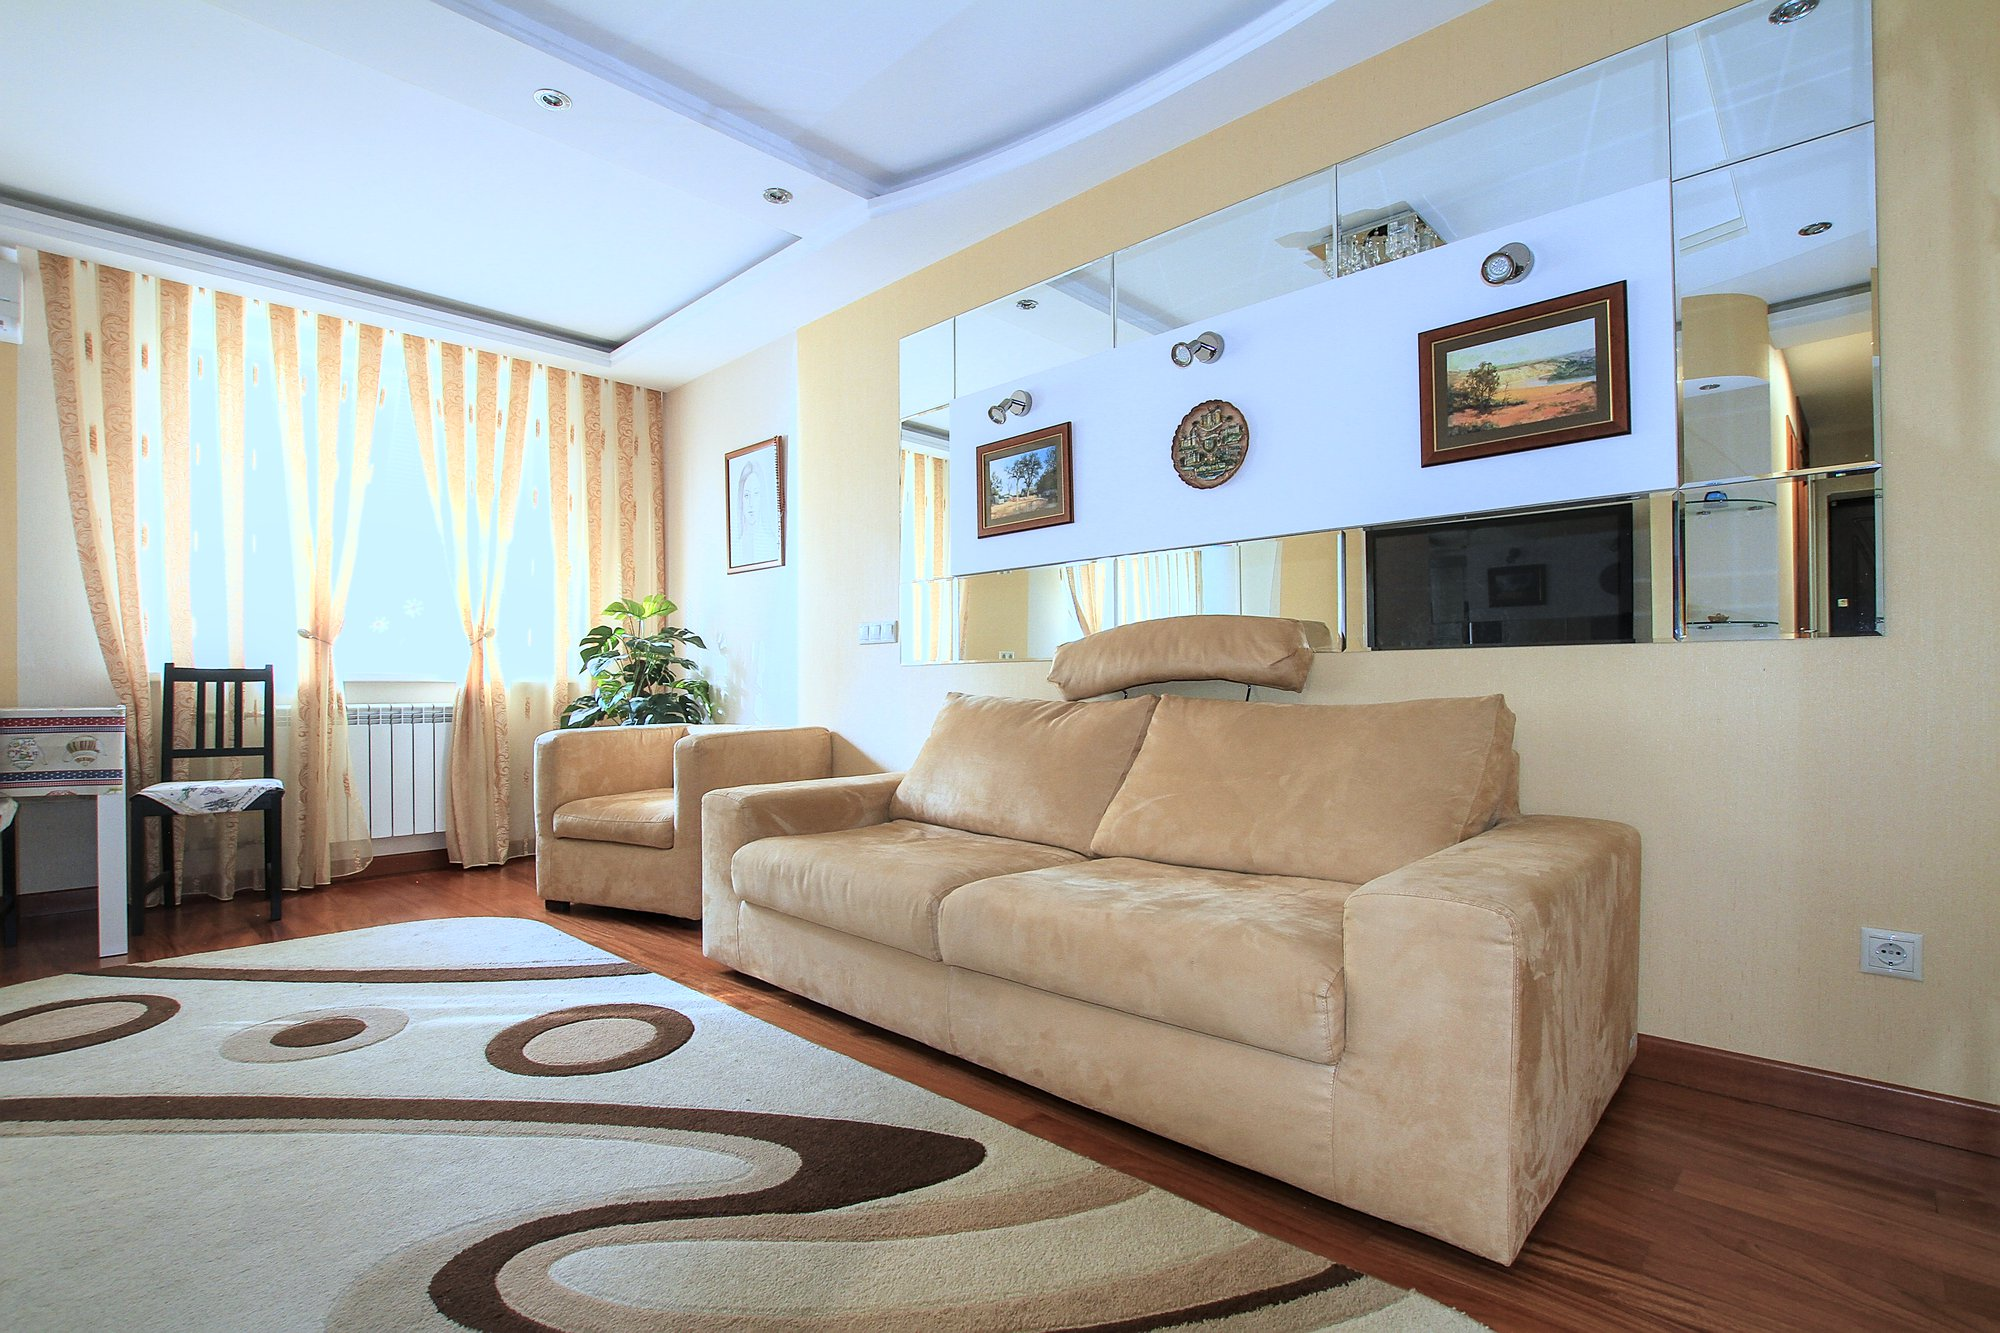 A-40-3-room-apartment-for-rent-in-Chisinau-Botanica_03.jpg